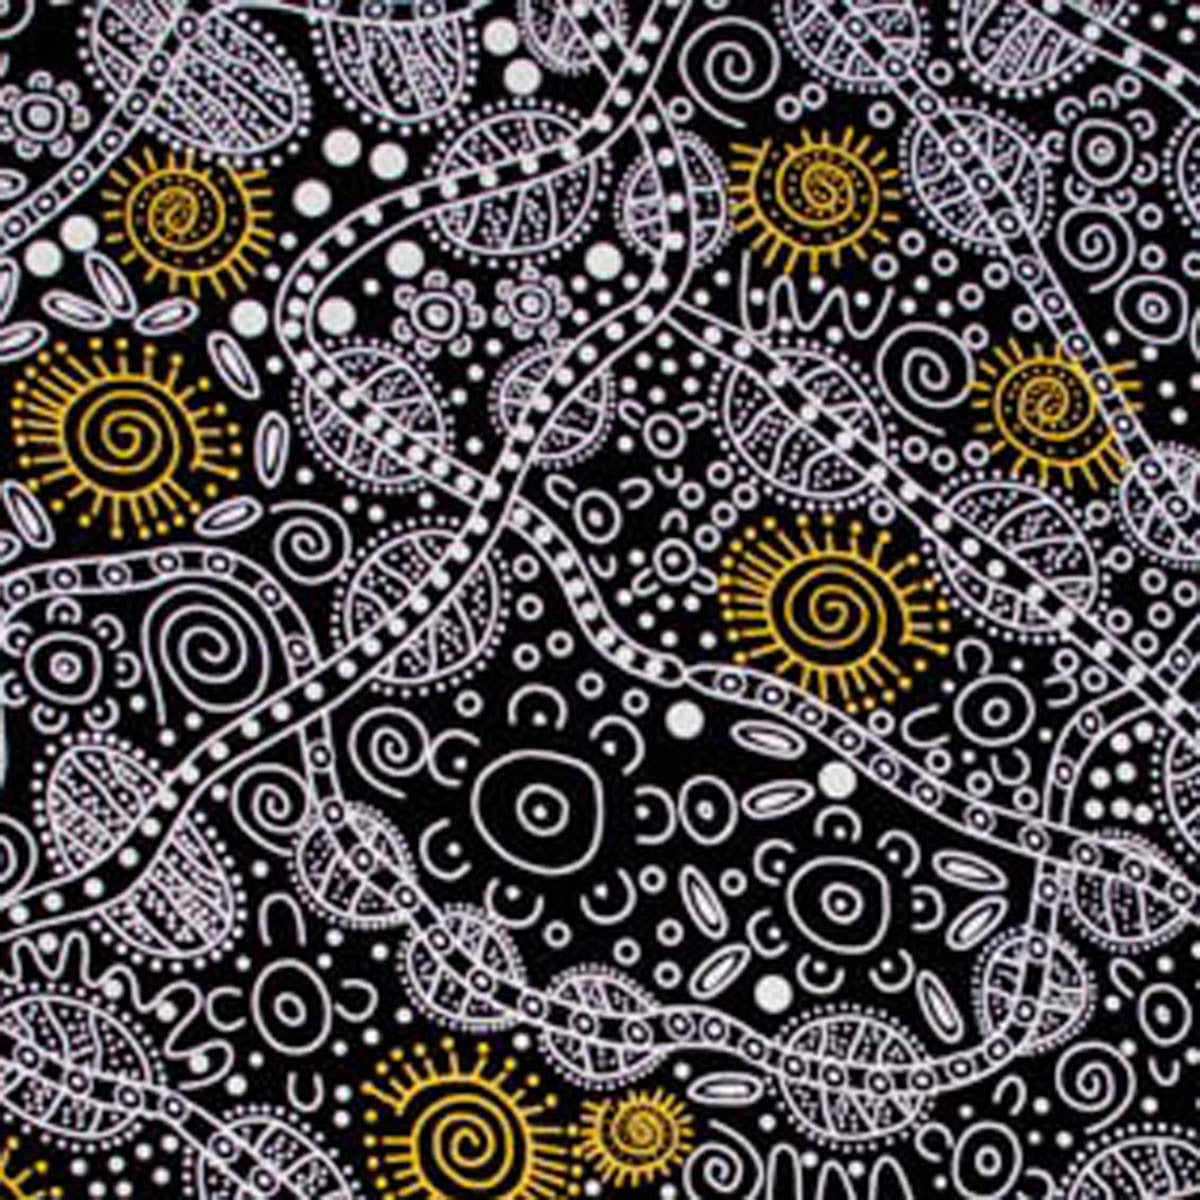 BUSH TUCKER BLACK by Aboriginal Artist JUNE SMITH